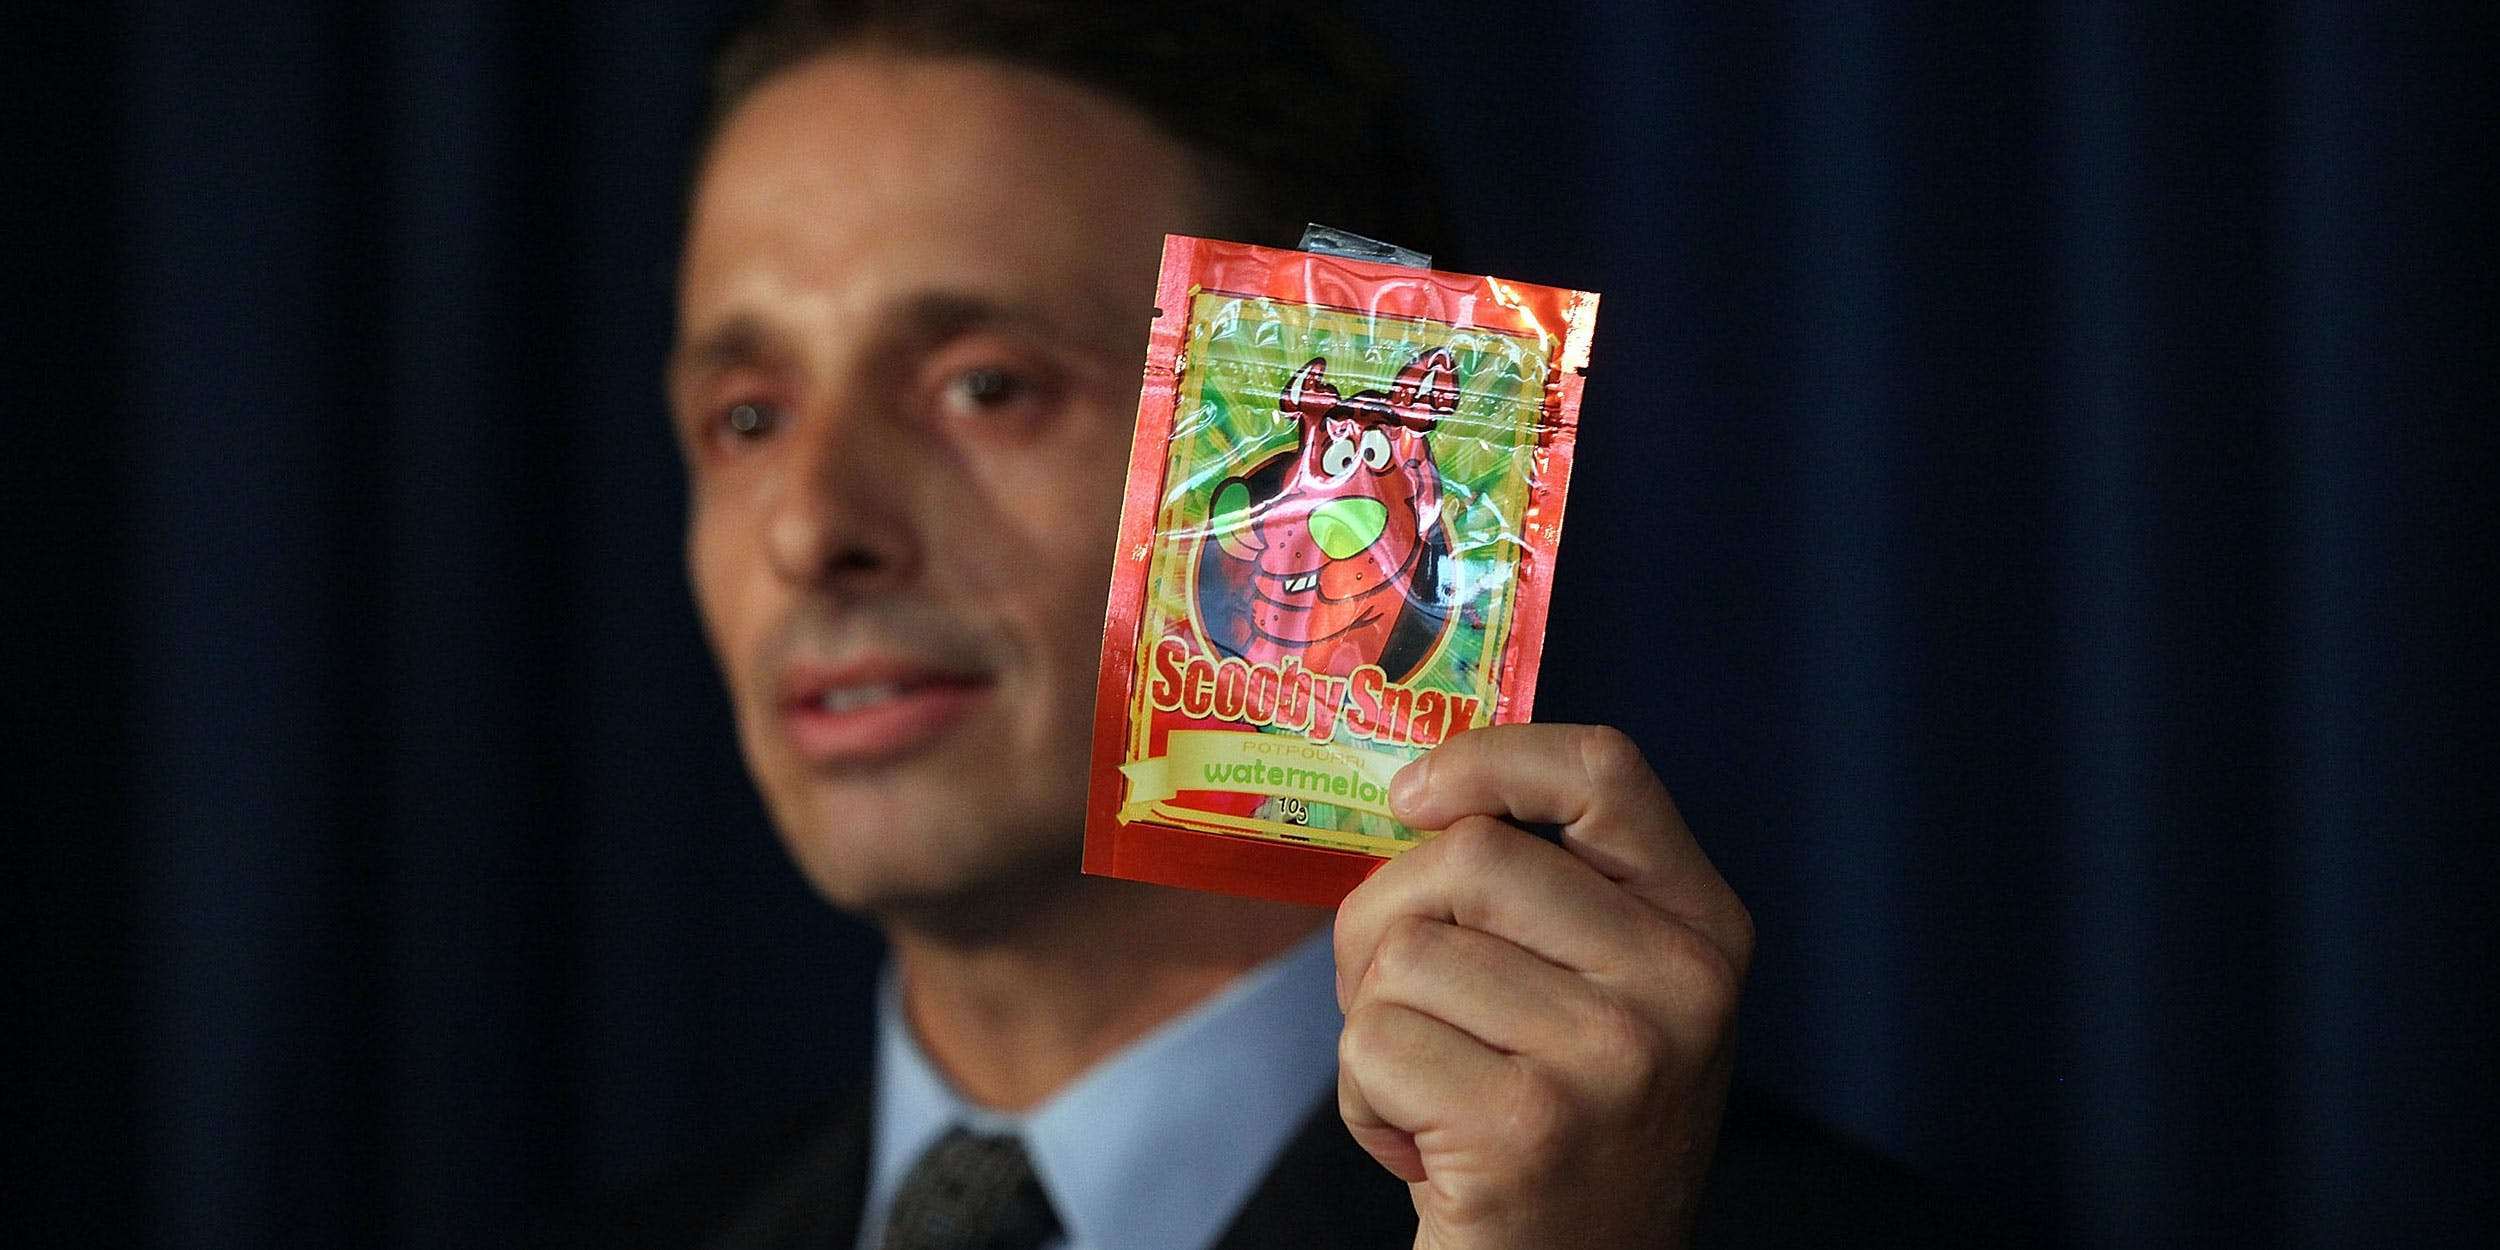 Kieth Kruskall with the Drug Enforcement Administration, holds up a package of synthetic cannabis